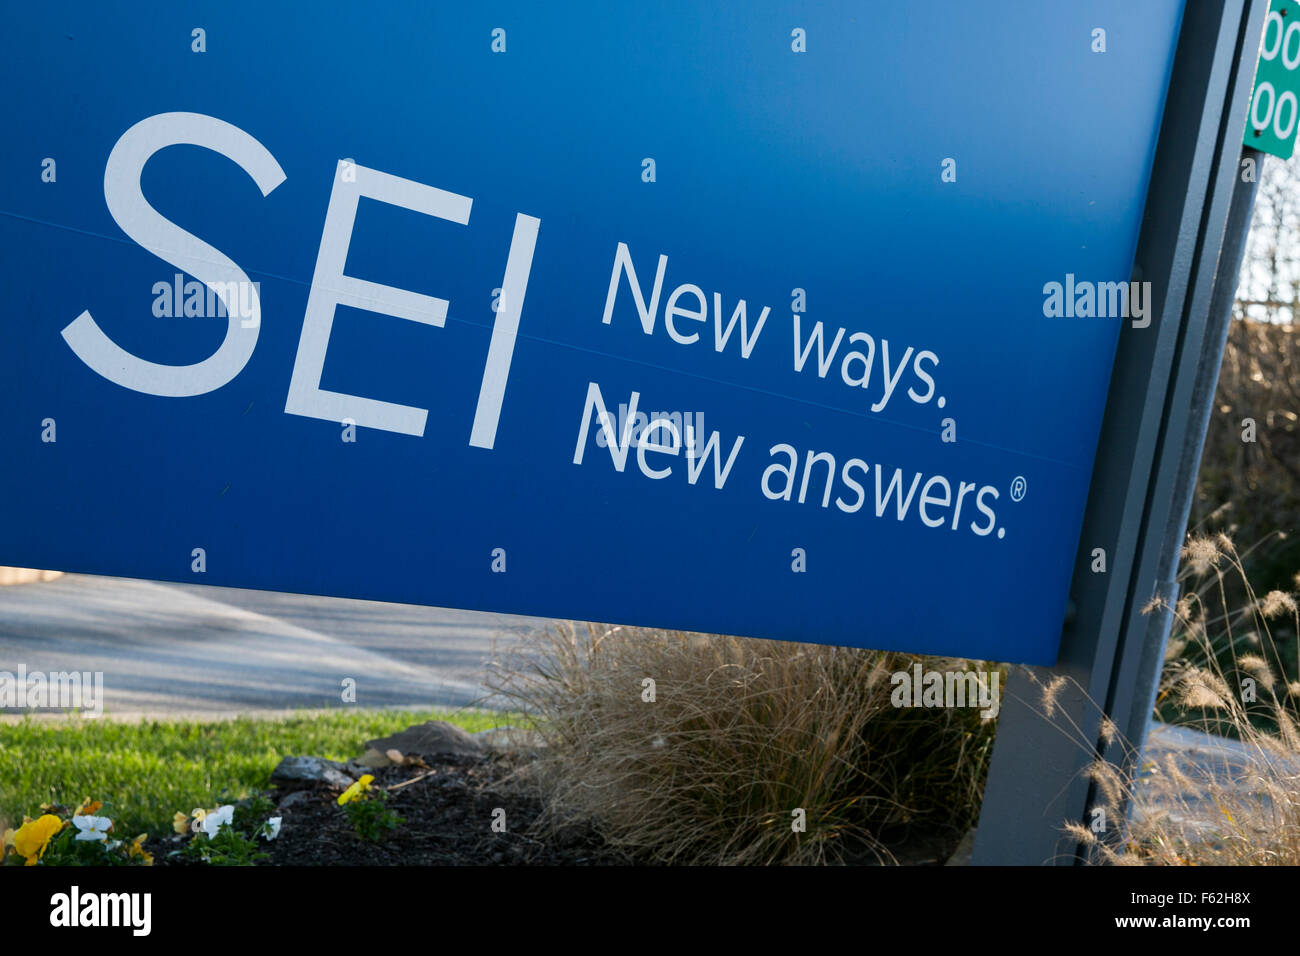 A logo sign outside of the headquarters of the SEI Investments Company in Oaks, Pennsylvania on November 8, 2015. - Stock Image